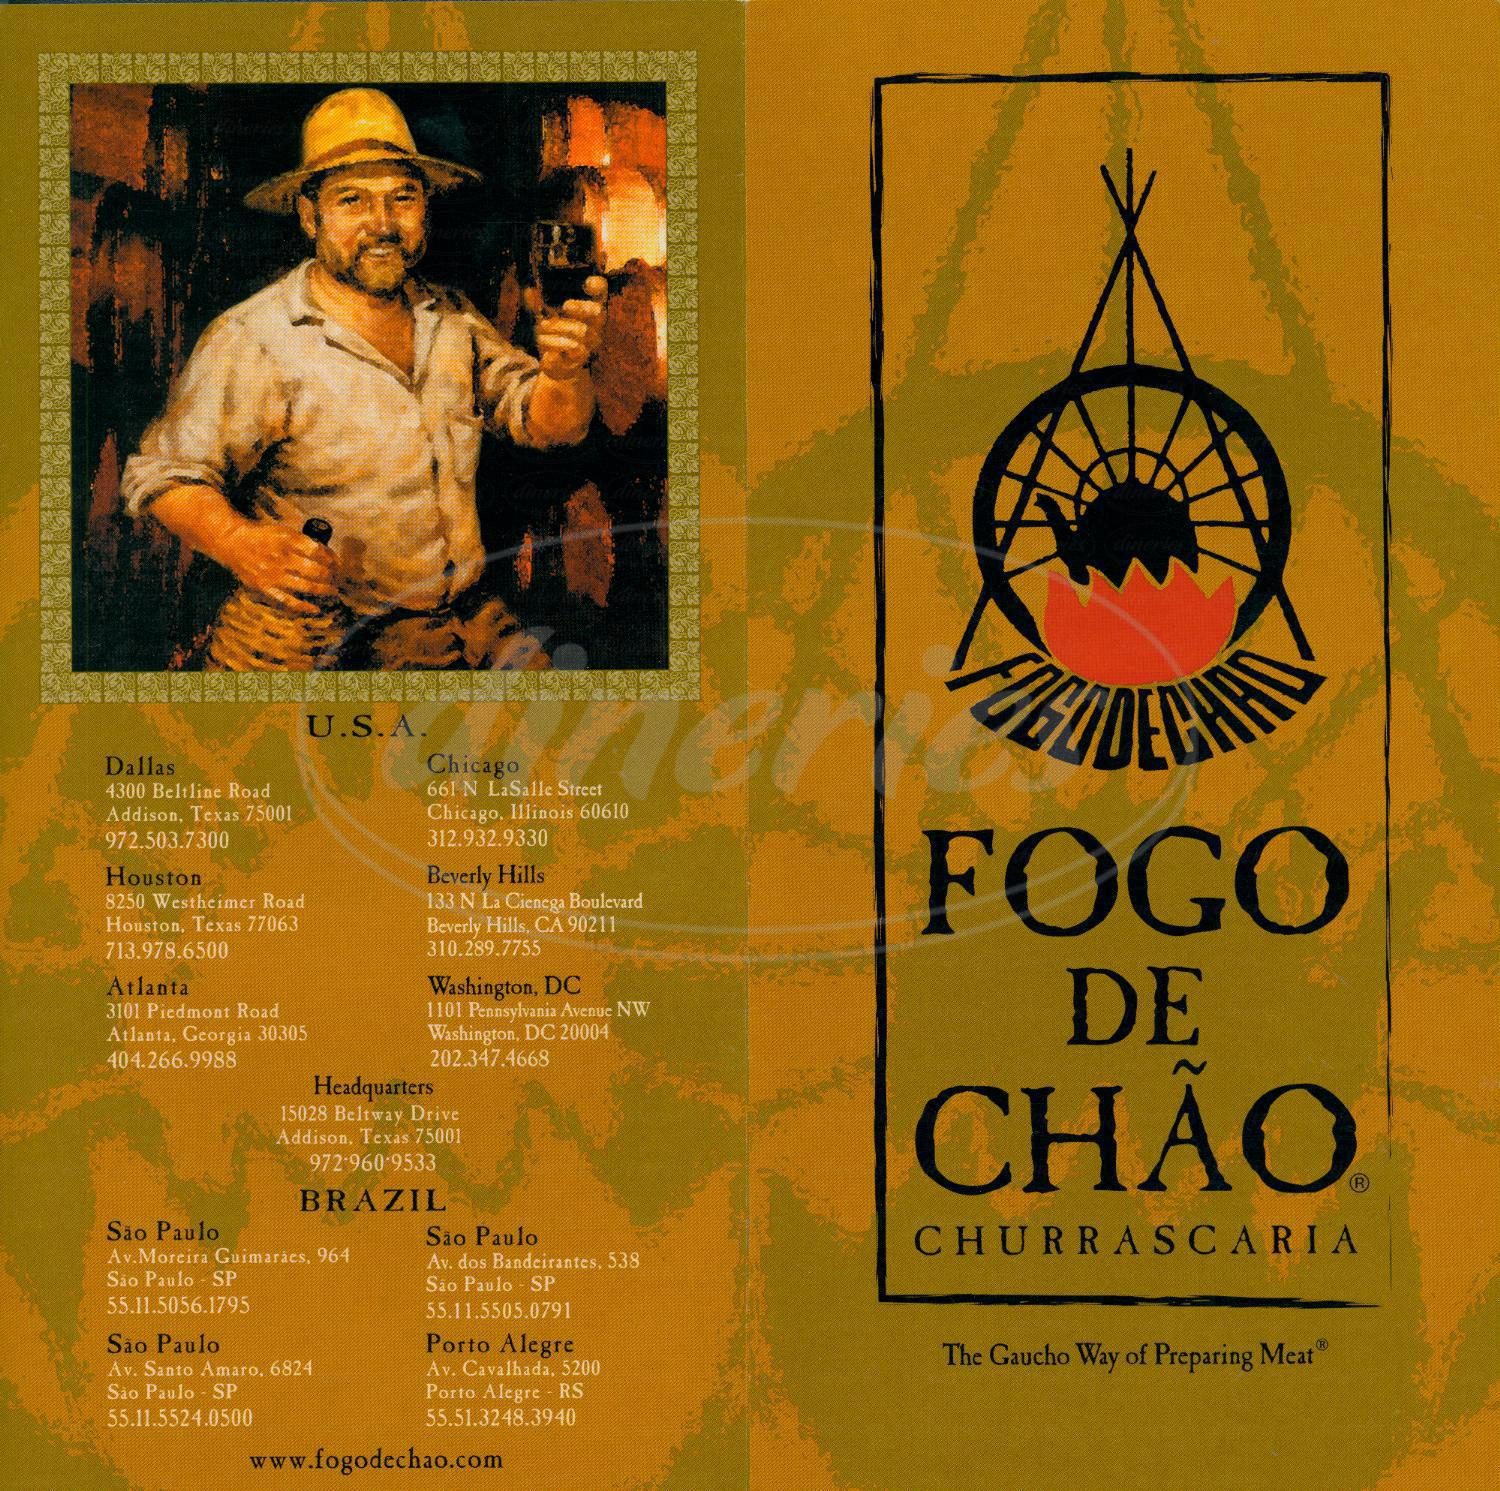 menu for Fogo de Chao